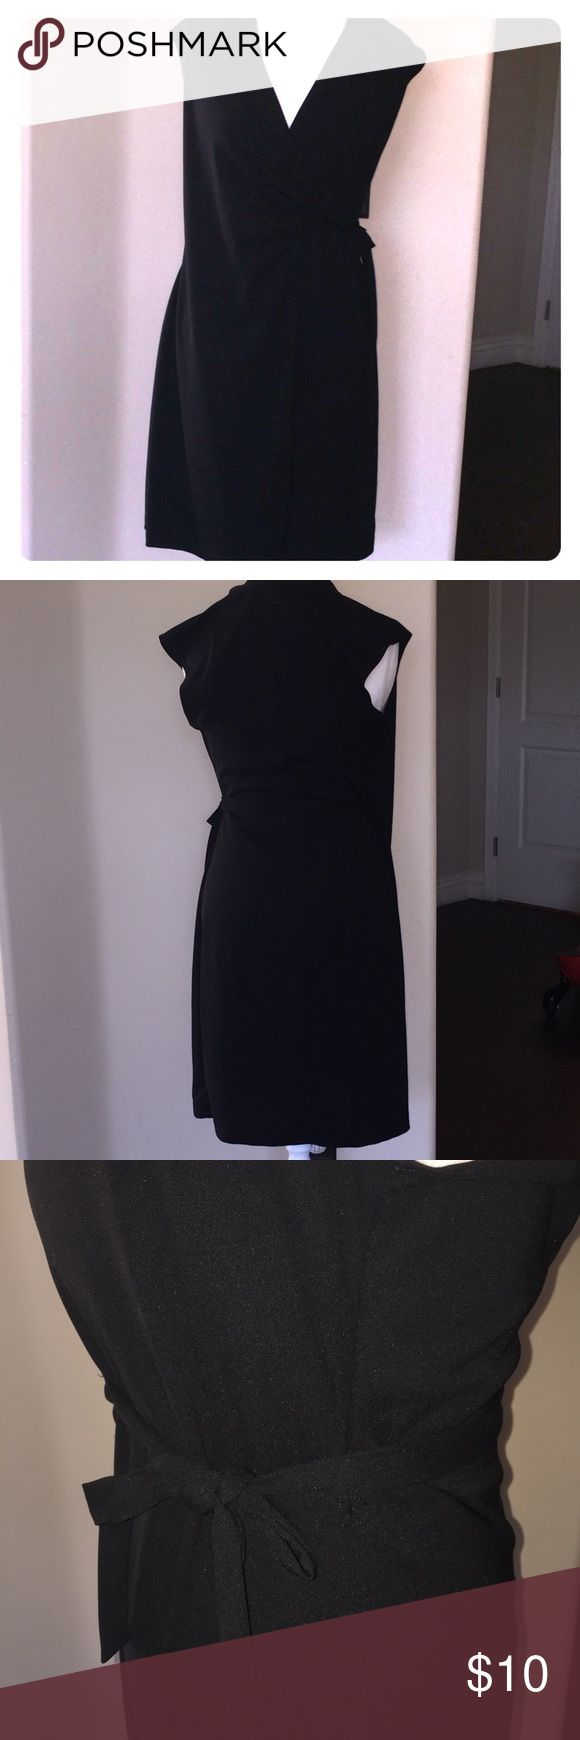 New York & Company Wrap Dress, M Wrap dress, size M, worn a handful of times, excellent second hand dress with no flaws. Paid $39  I have another NY&C dress listed, bundle to save on shipping! New York & Company Dresses Midi